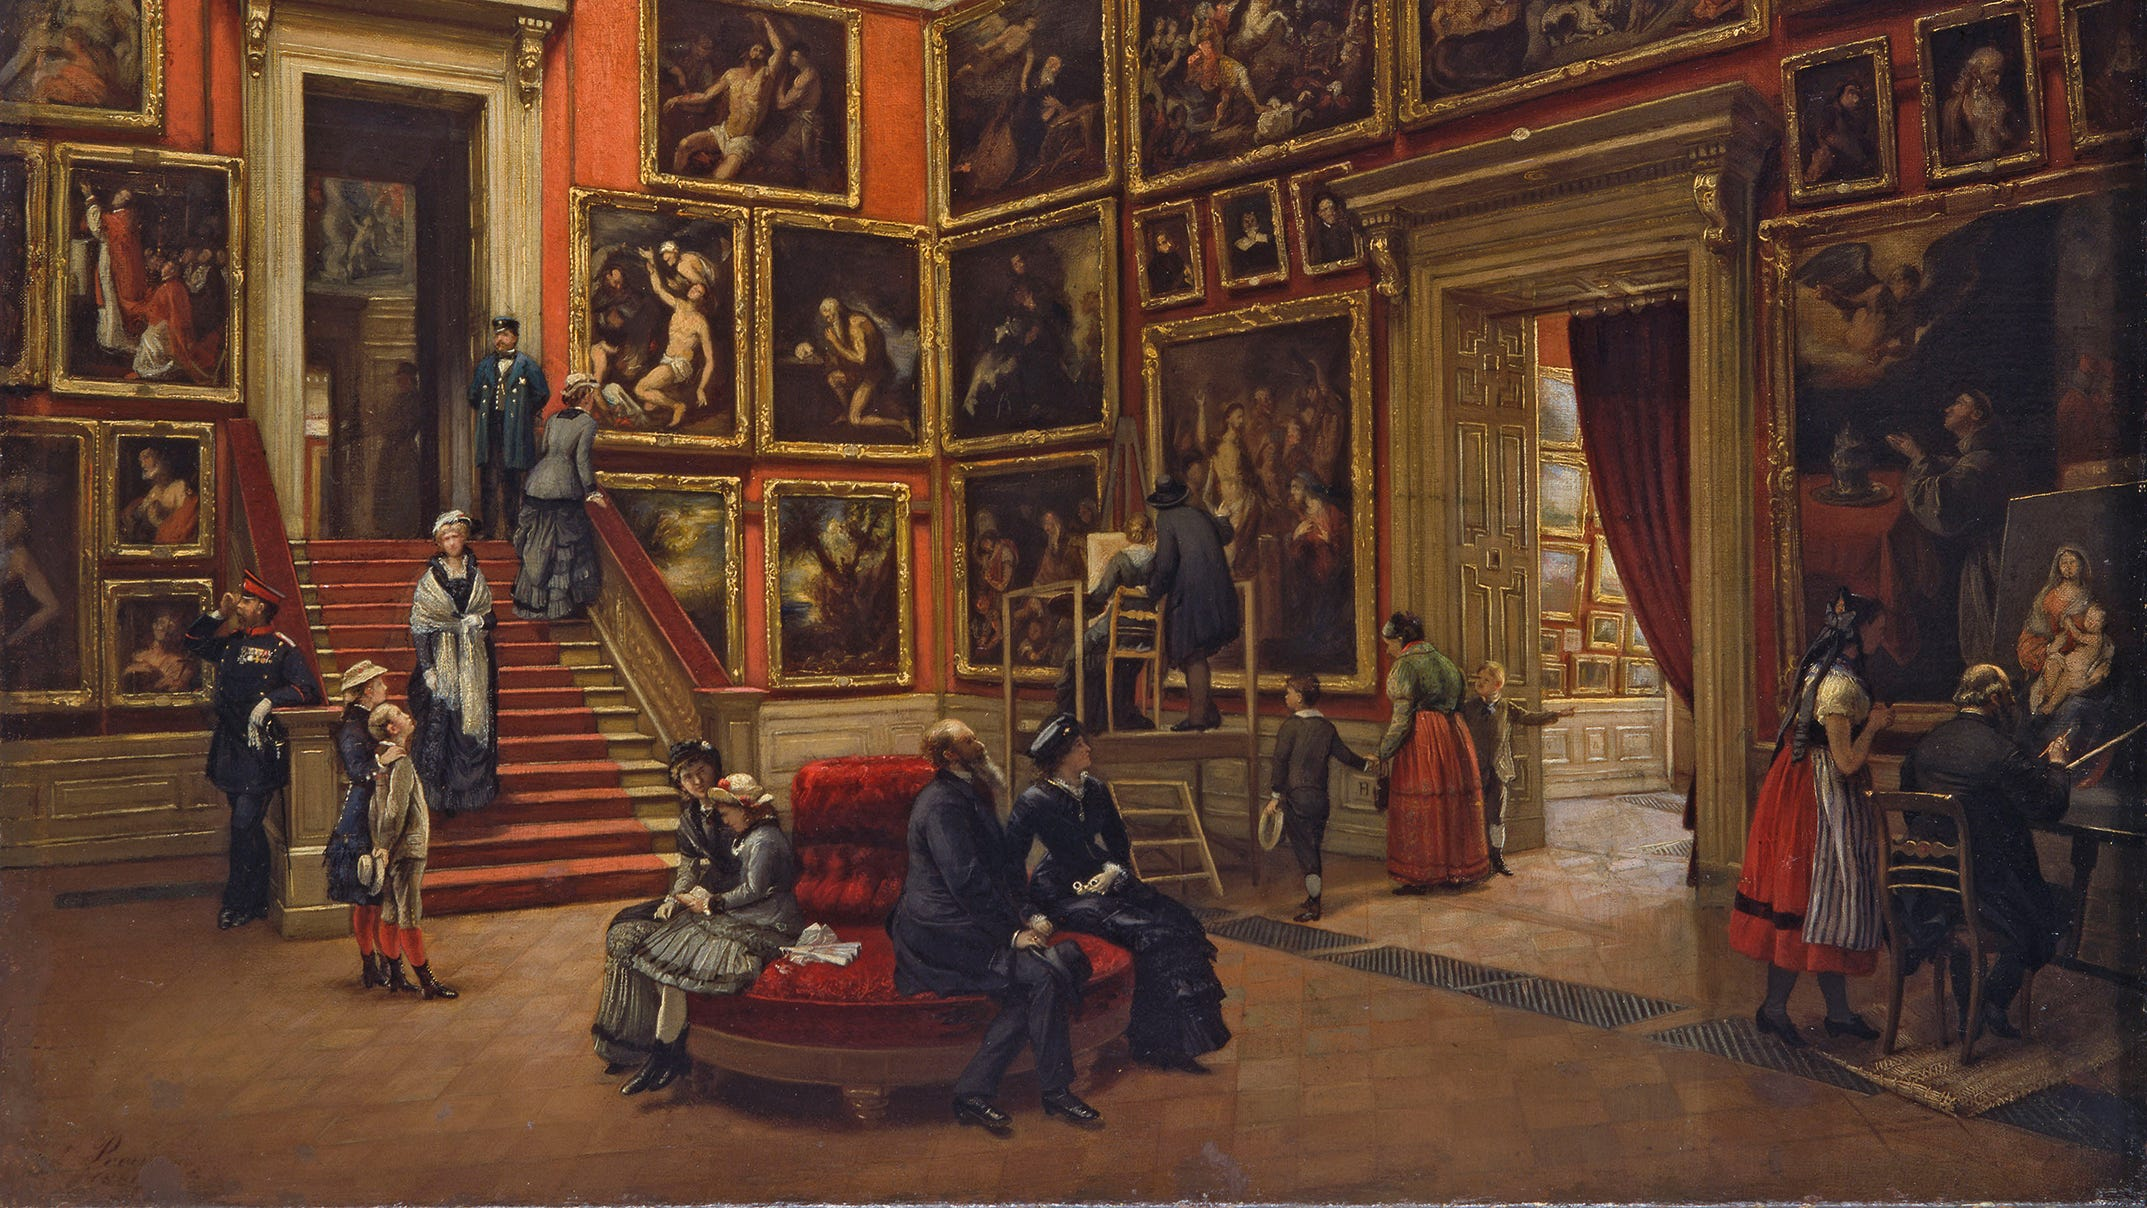 It's been 200 years since Spain's Prado Museum opened, and a new exhibit explores its history and influence.